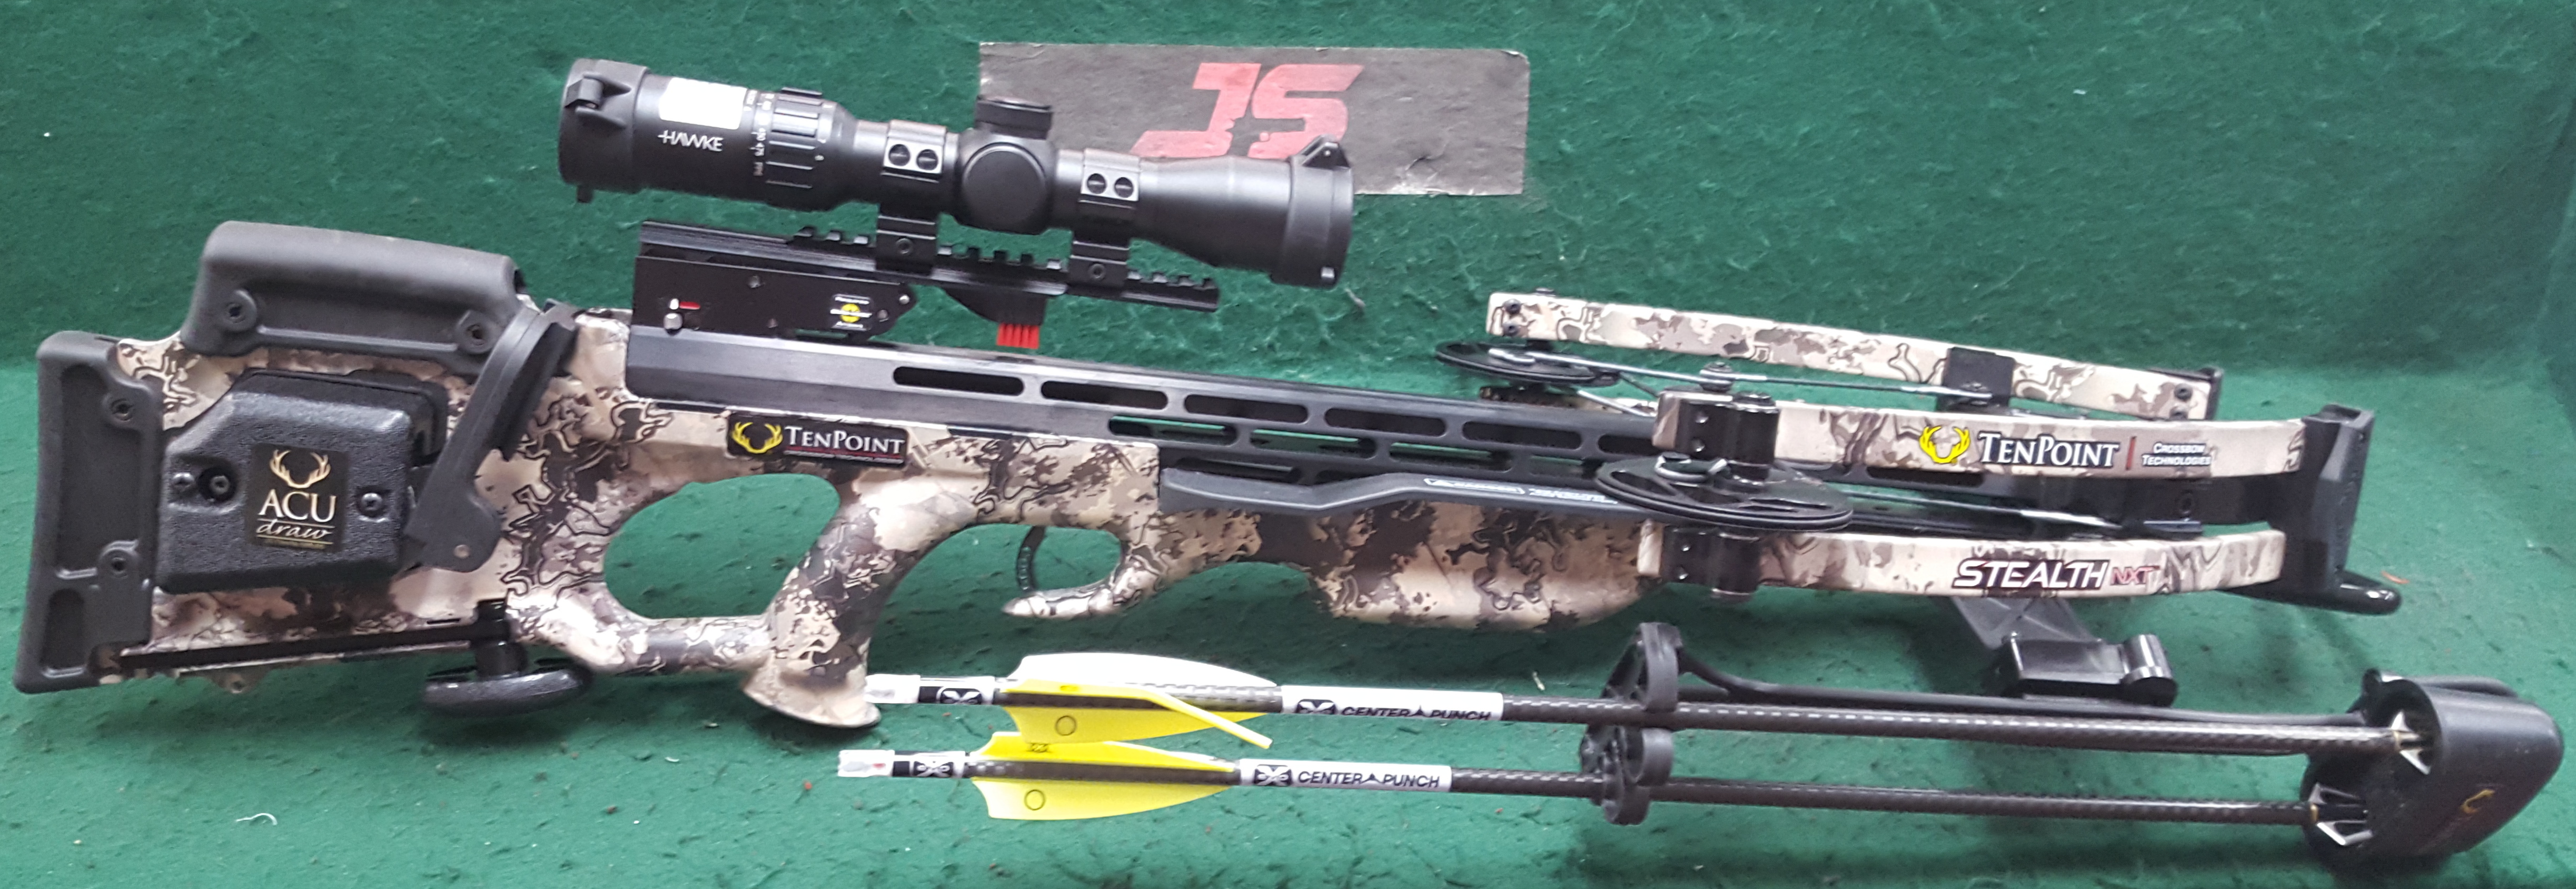 TEN POINT  STEALTH NXT  CROSSBOW